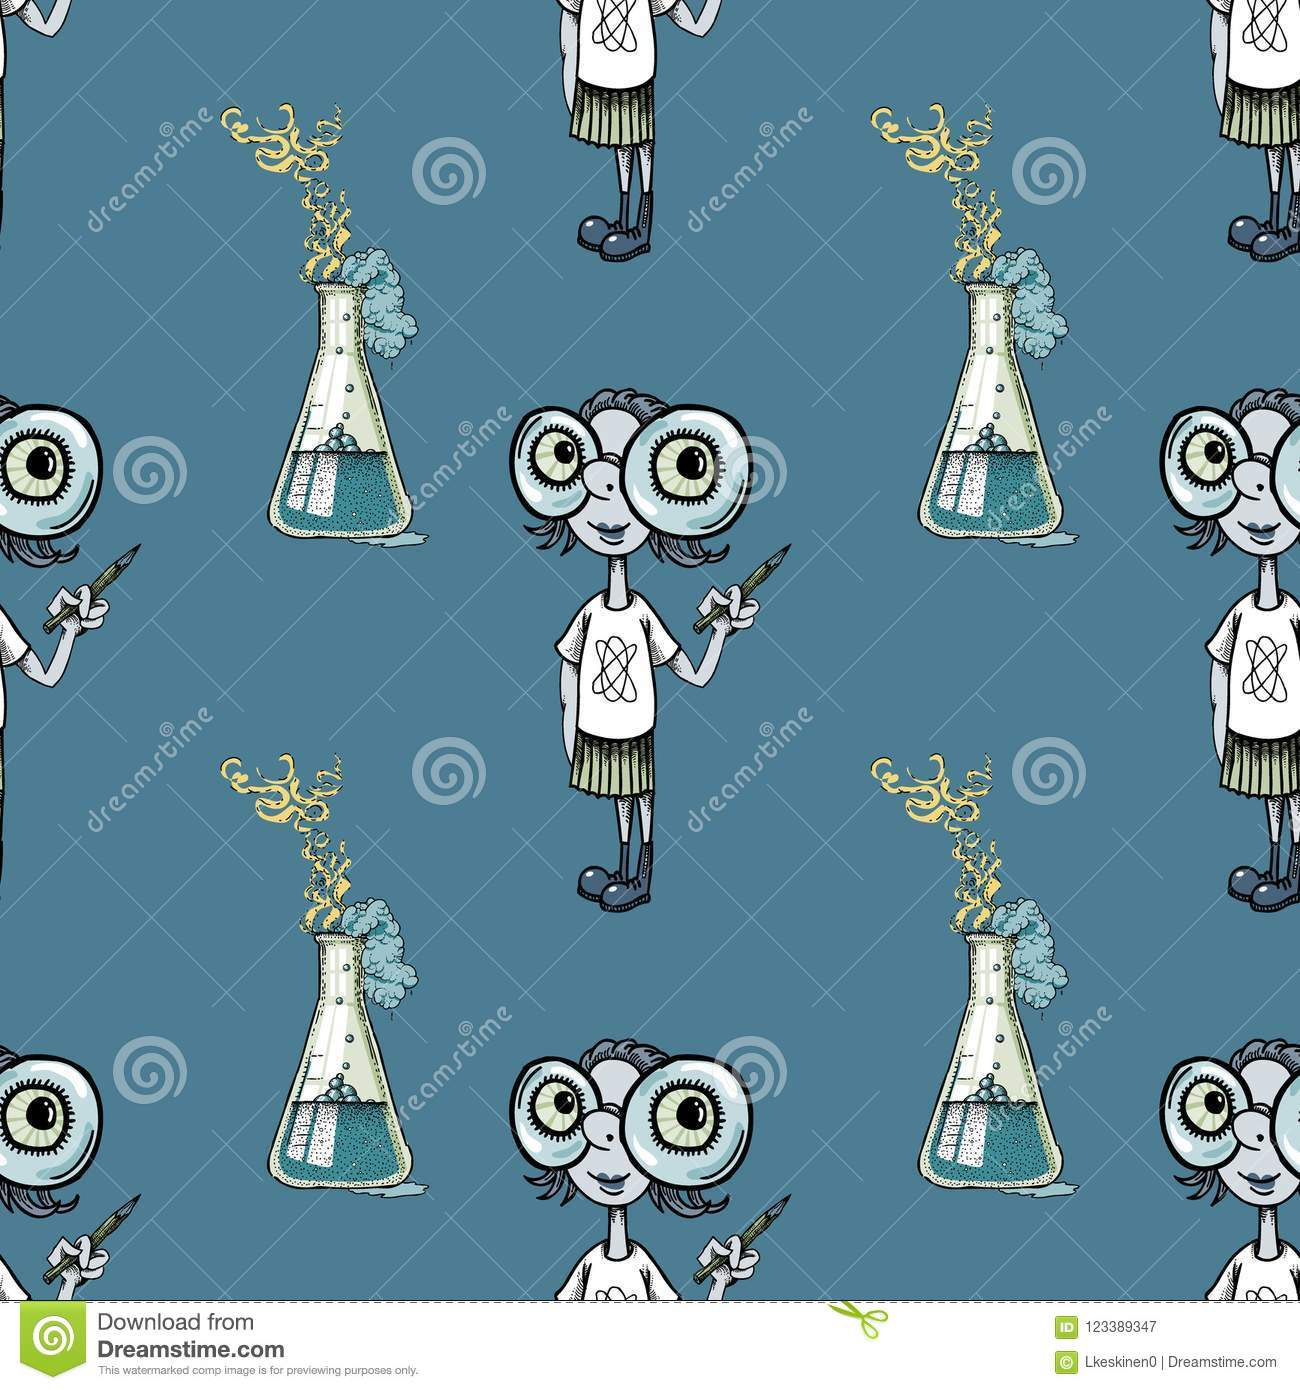 Geek girl and scientific experiment seamless pattern